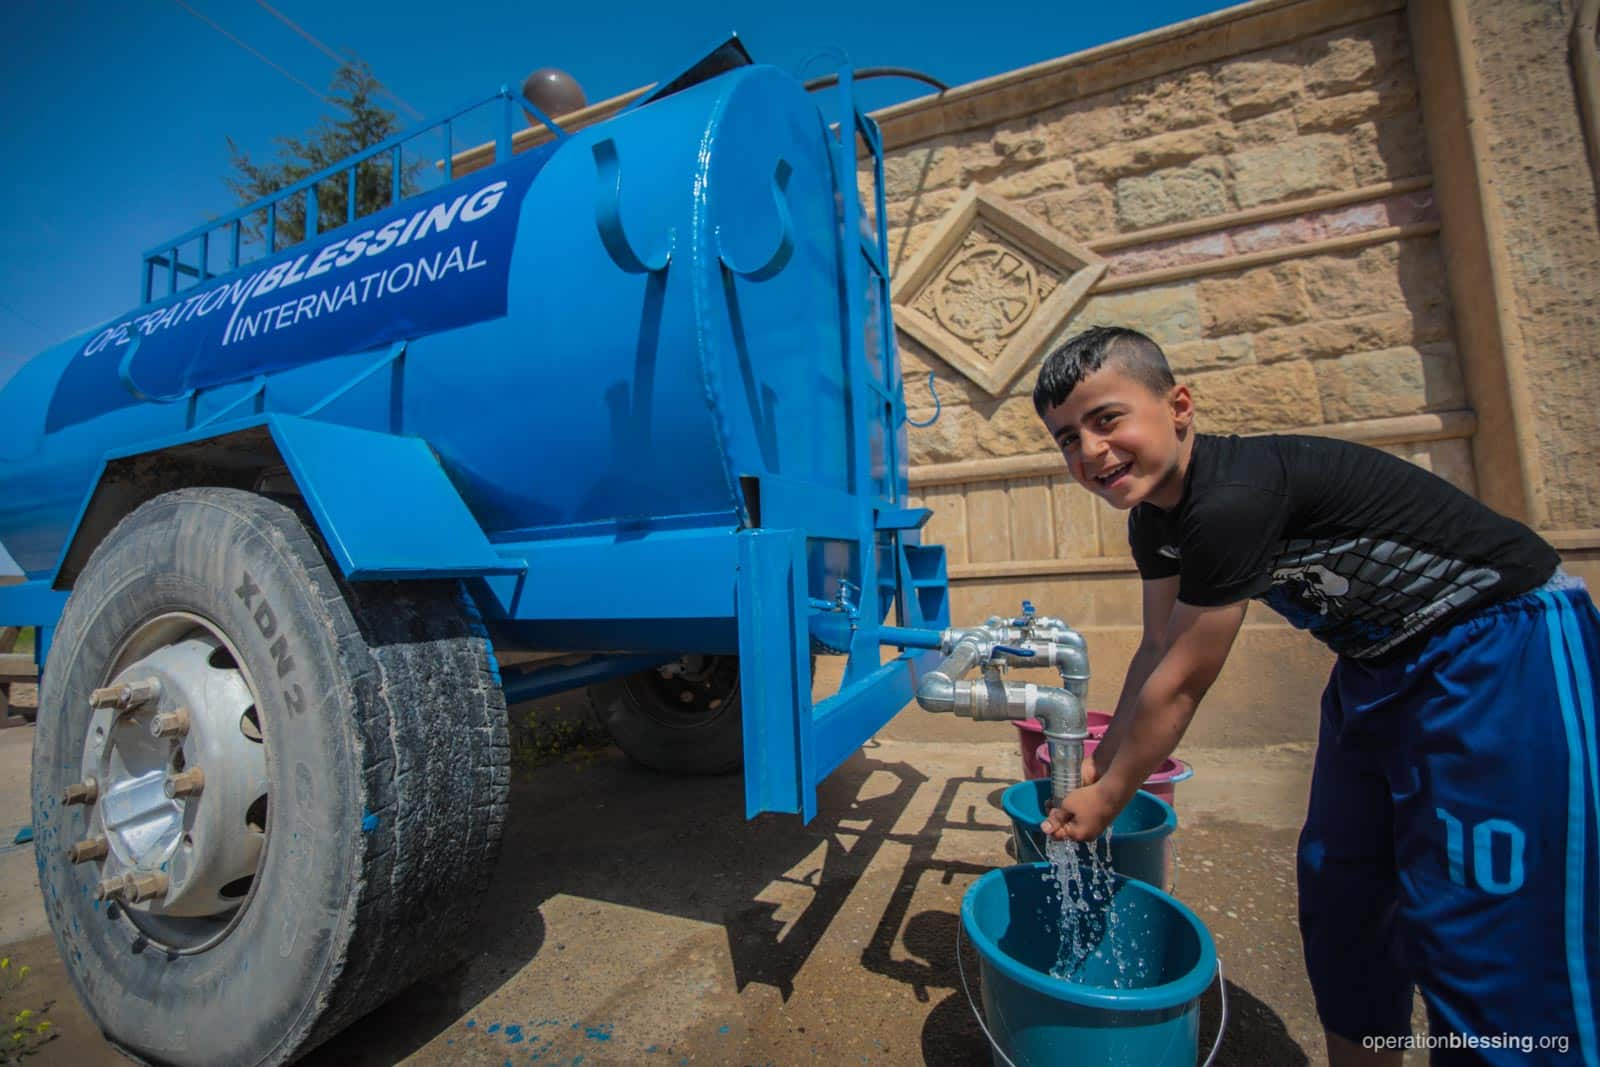 A boy washes his hands in water flowing from Operation Blessing's mobile water tank in Qaraqosh, Iraq.